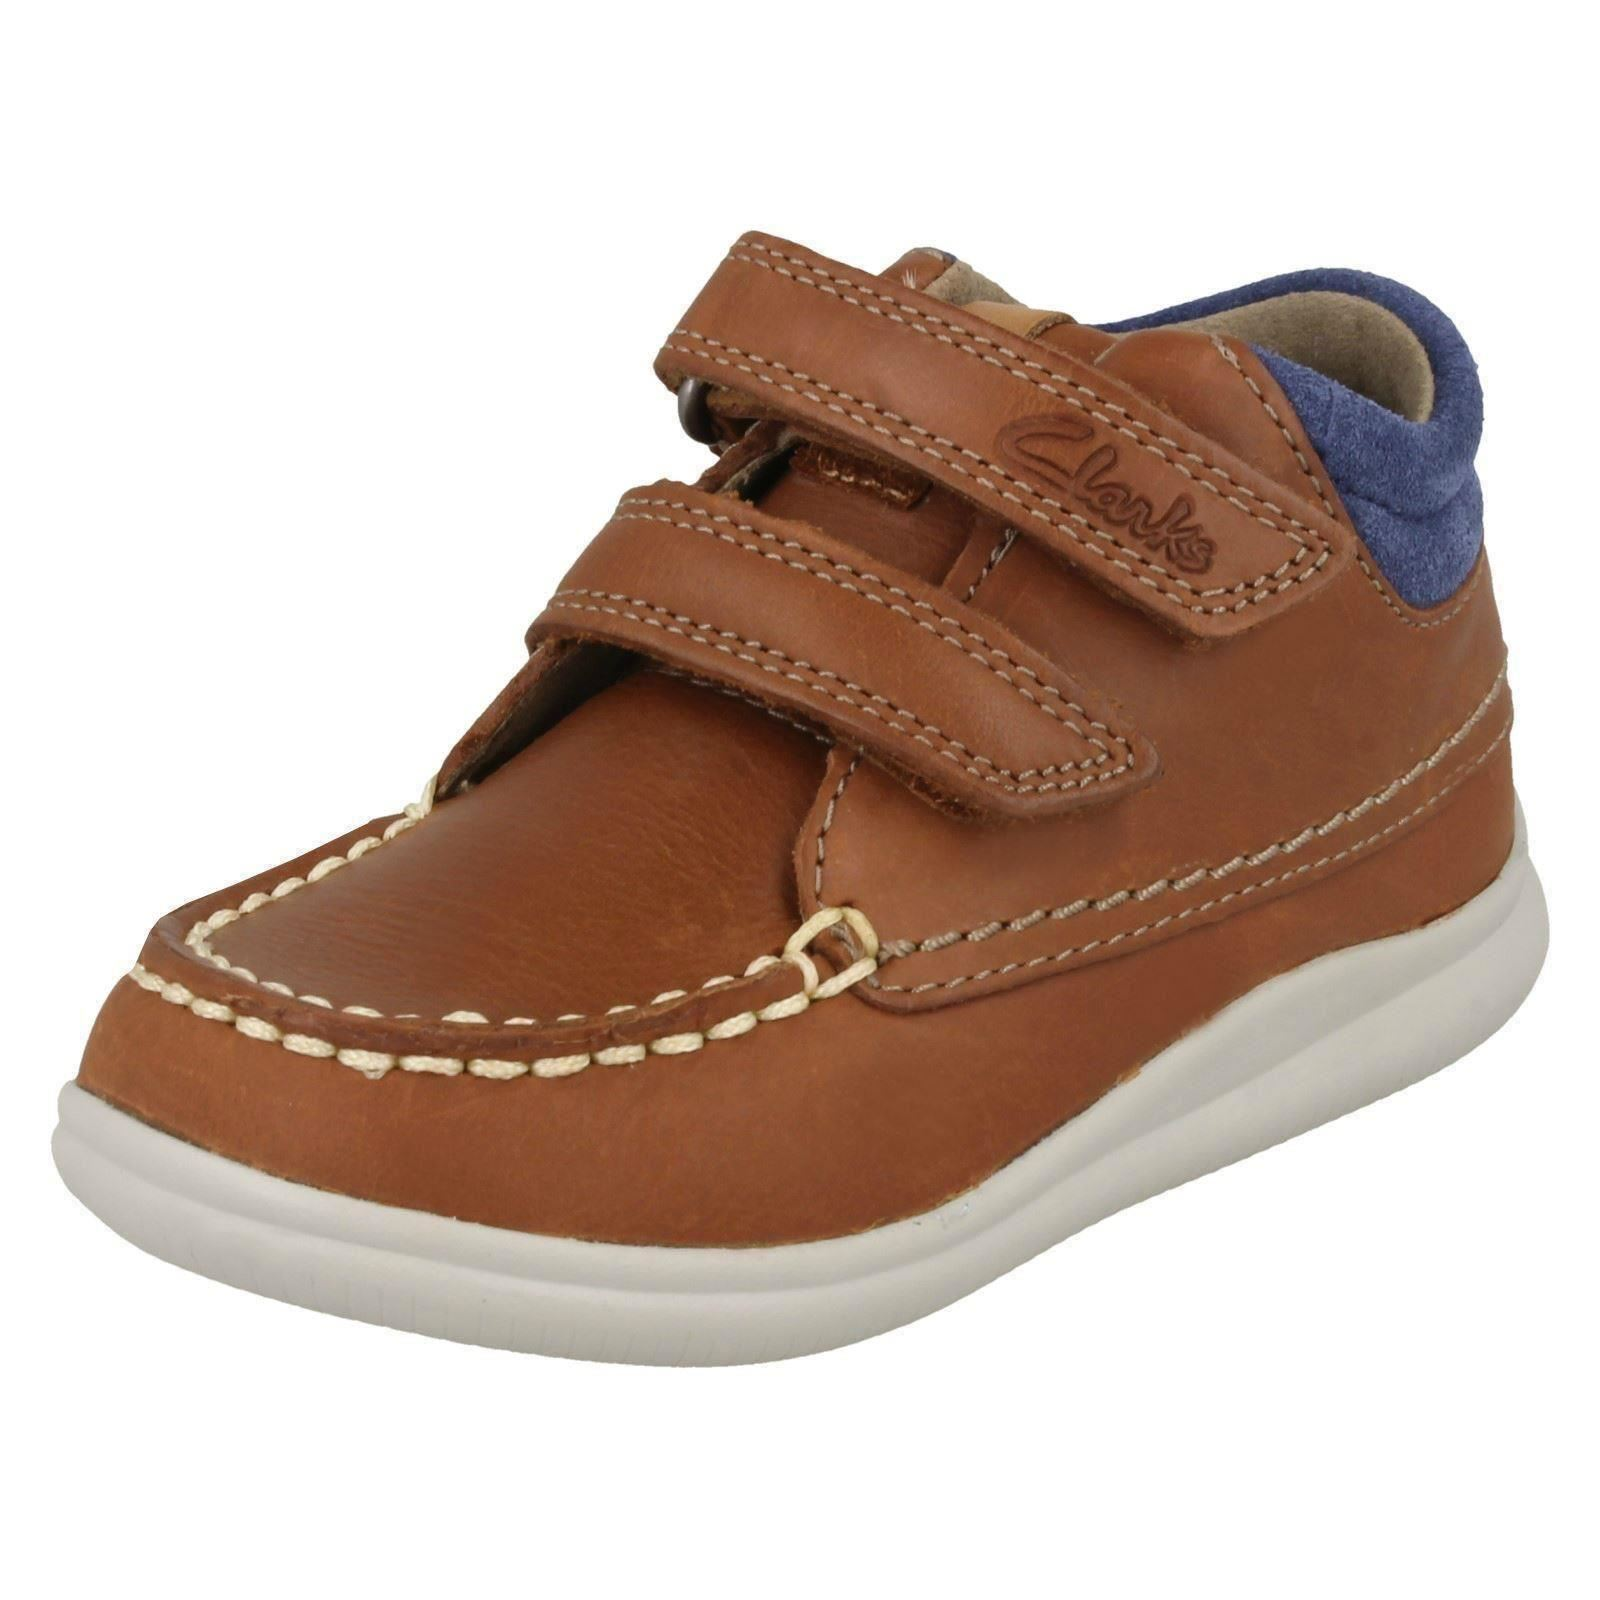 cc954d45c5deb0 Boys First Shoes by Clarks Ankle BOOTS  cloud Tuktu  Tan (brown) UK 4  Infant H. About this product. Picture 1 of 10  Picture 2 of 10 ...